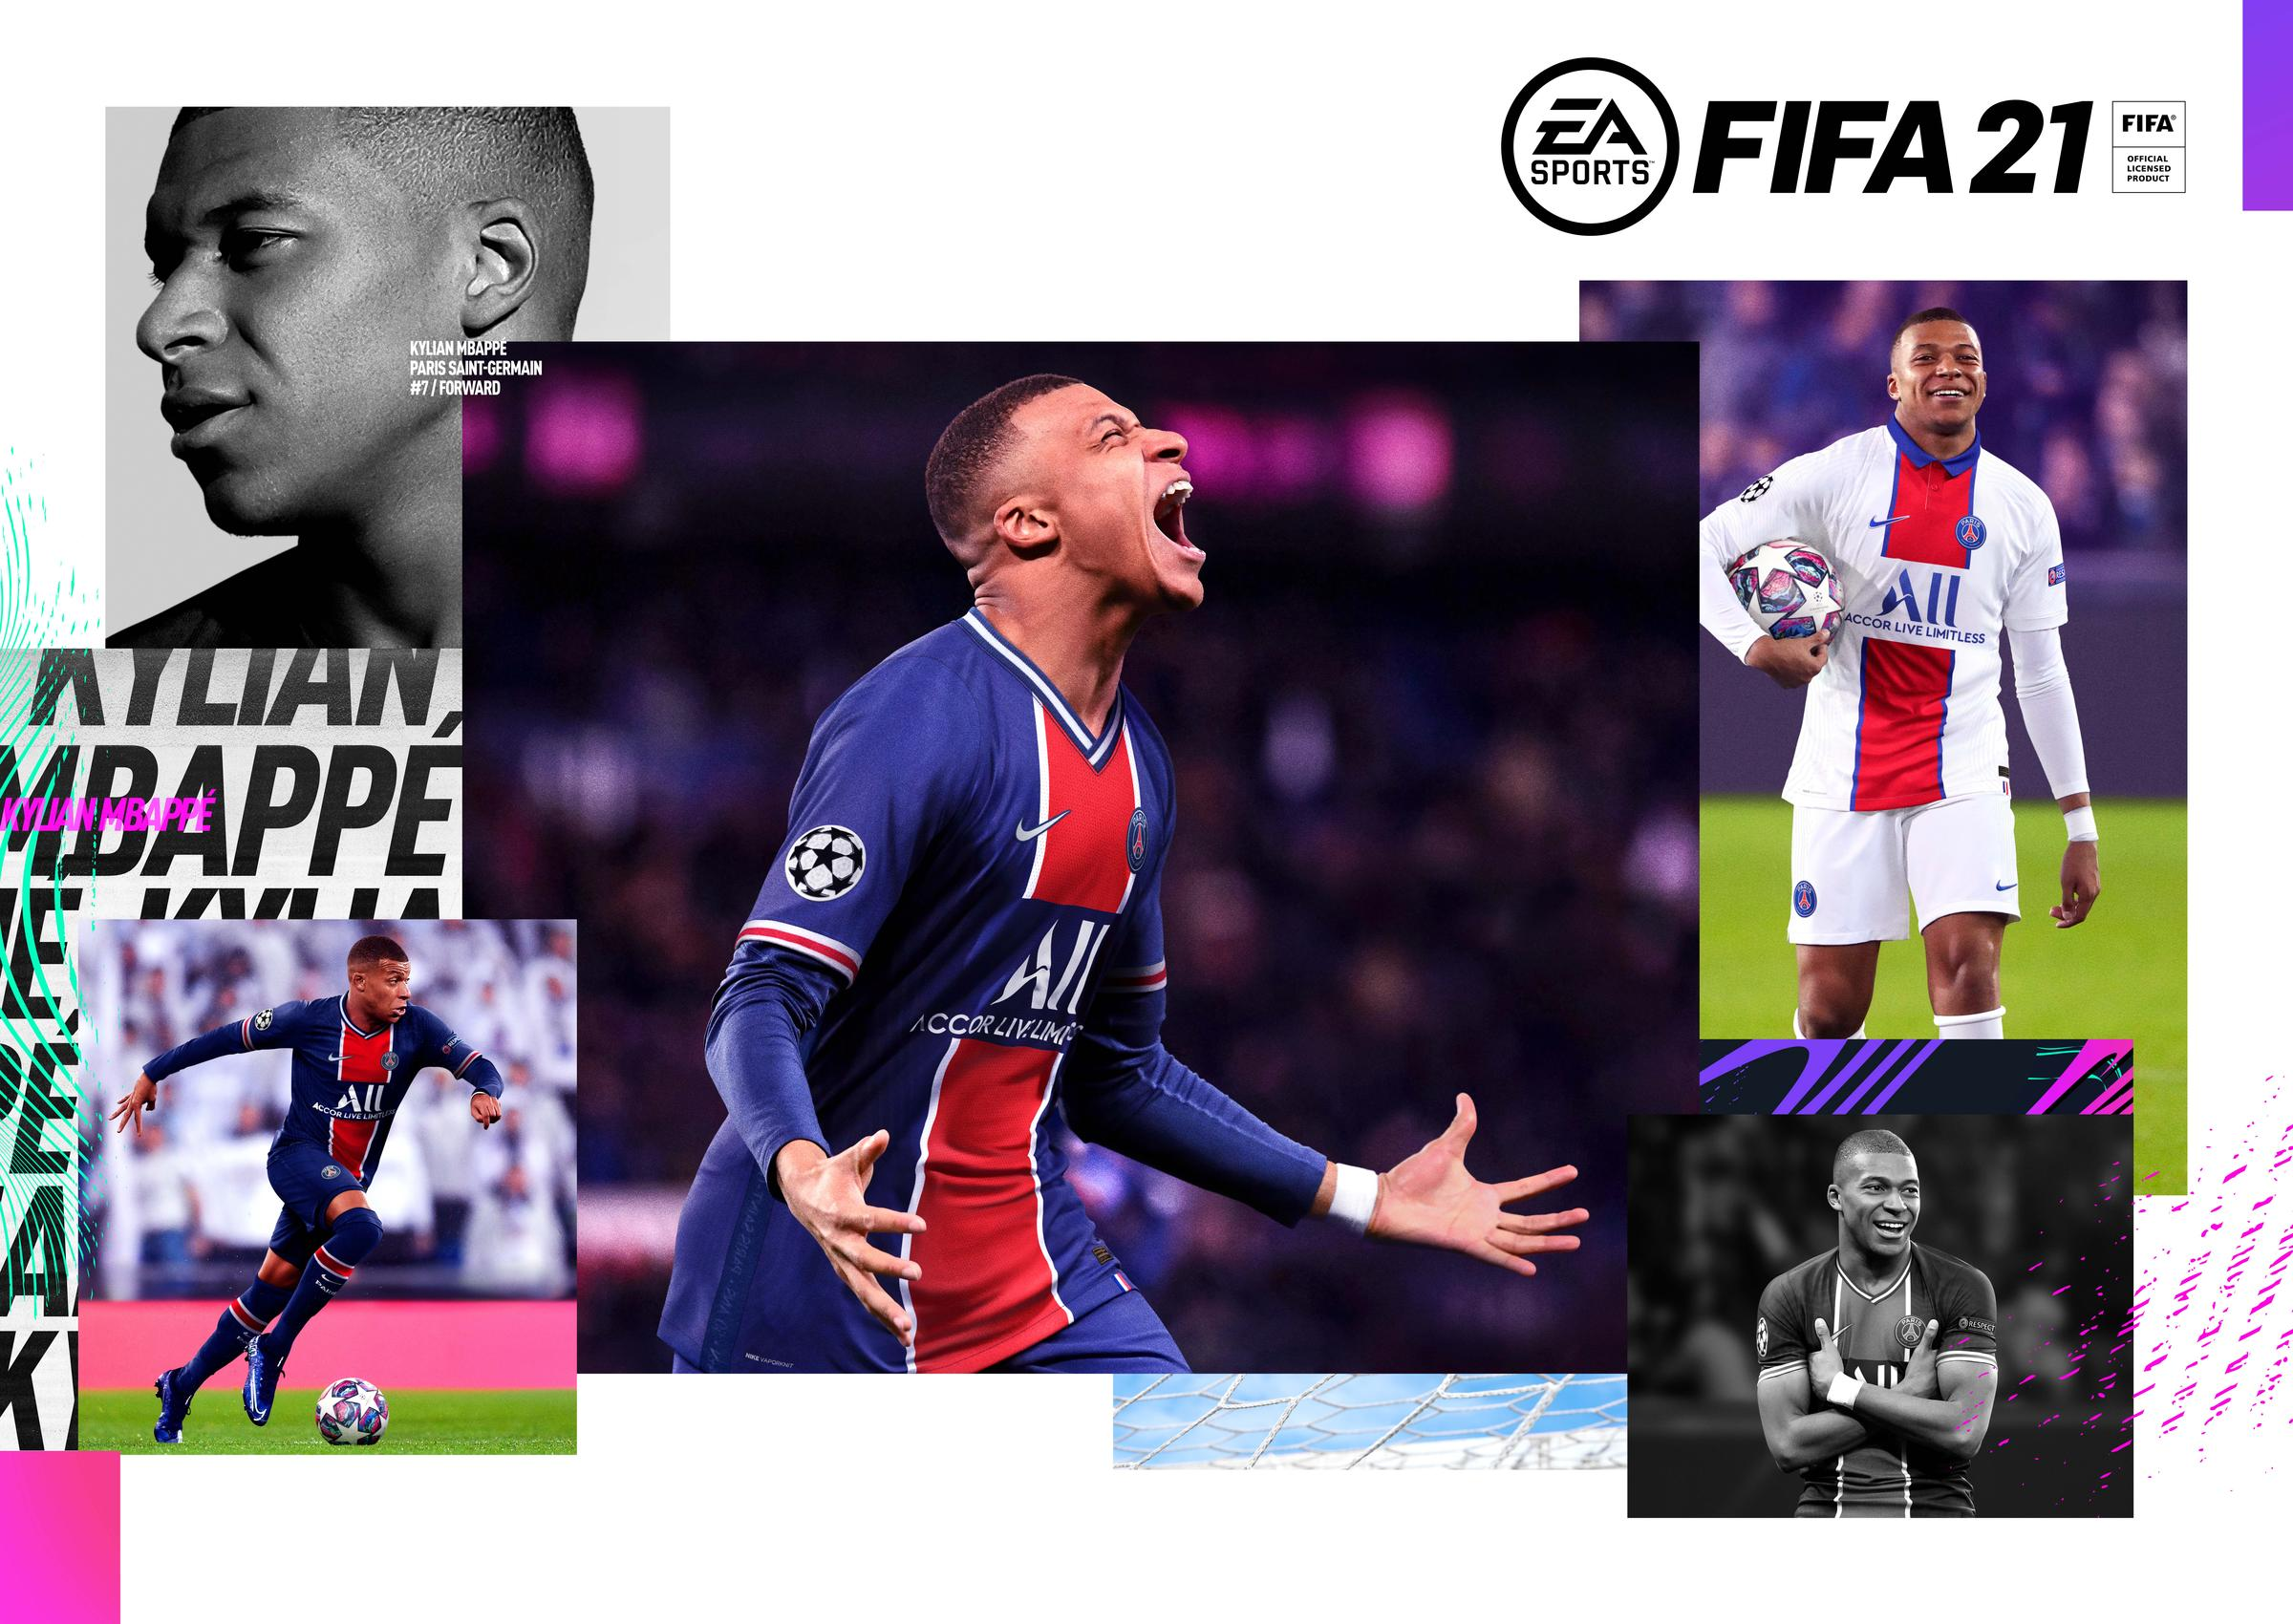 EA SPORTS FIFA 21 BRINGS BIG UPDATES TO CAREER MODE AND GAMEPLAY REALISM, PLUS NEW WAYS TO TEAM UP ONLINE WITH FRIENDS